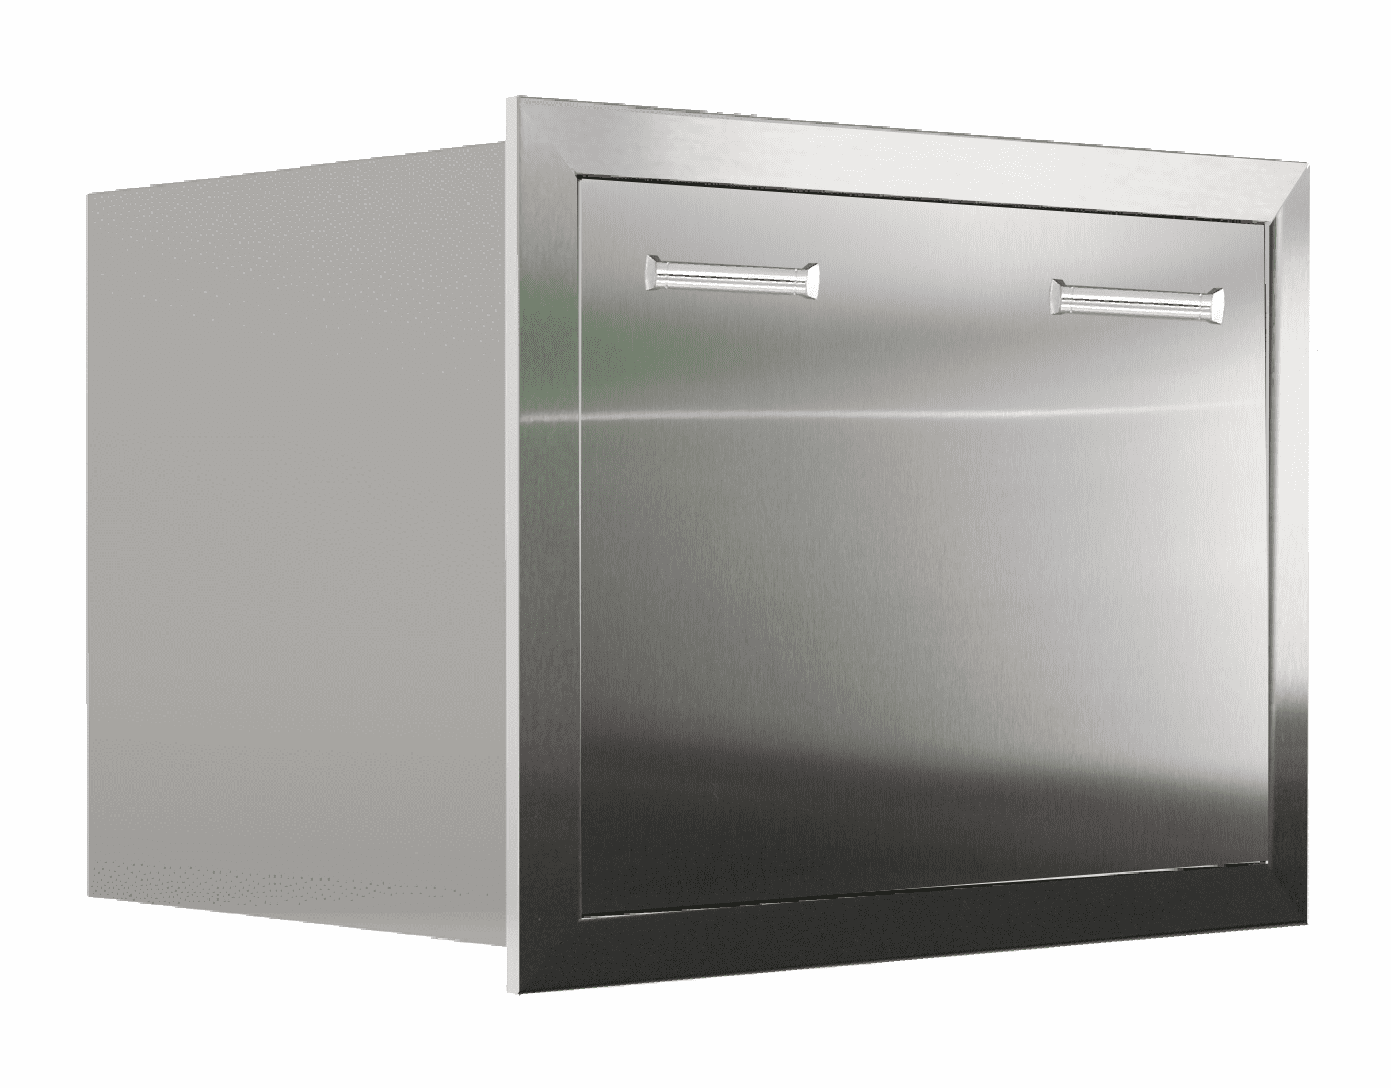 PCM 350H Series BBQ Drawer - 30 Inch Insulated Ice Drawer - Rollout